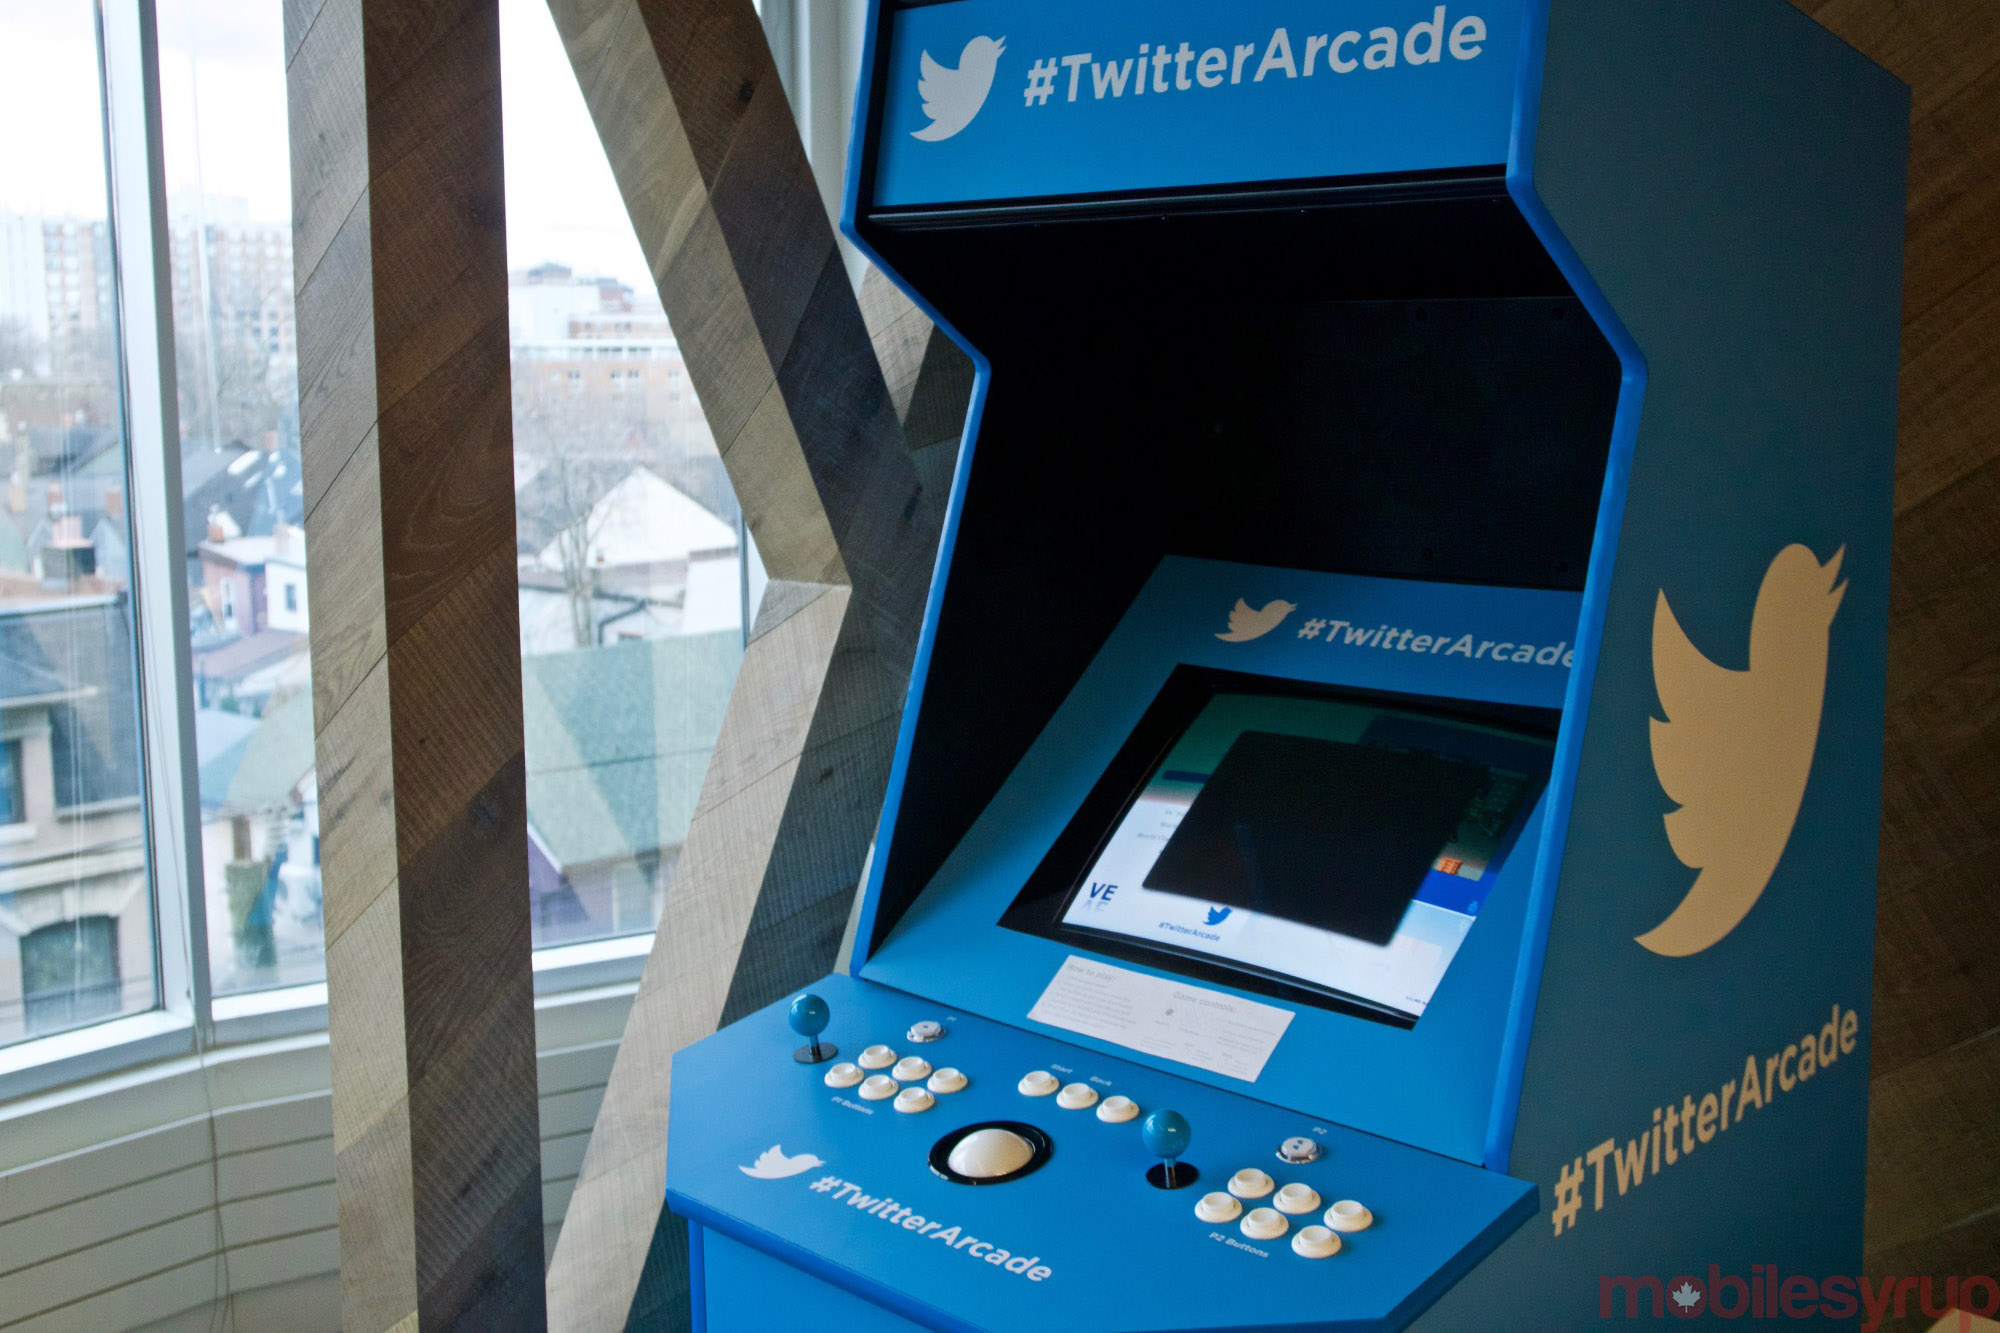 It's not all work at Twitter. There are also a variety of things for employees to use to unwind, including this arcade cabinet.